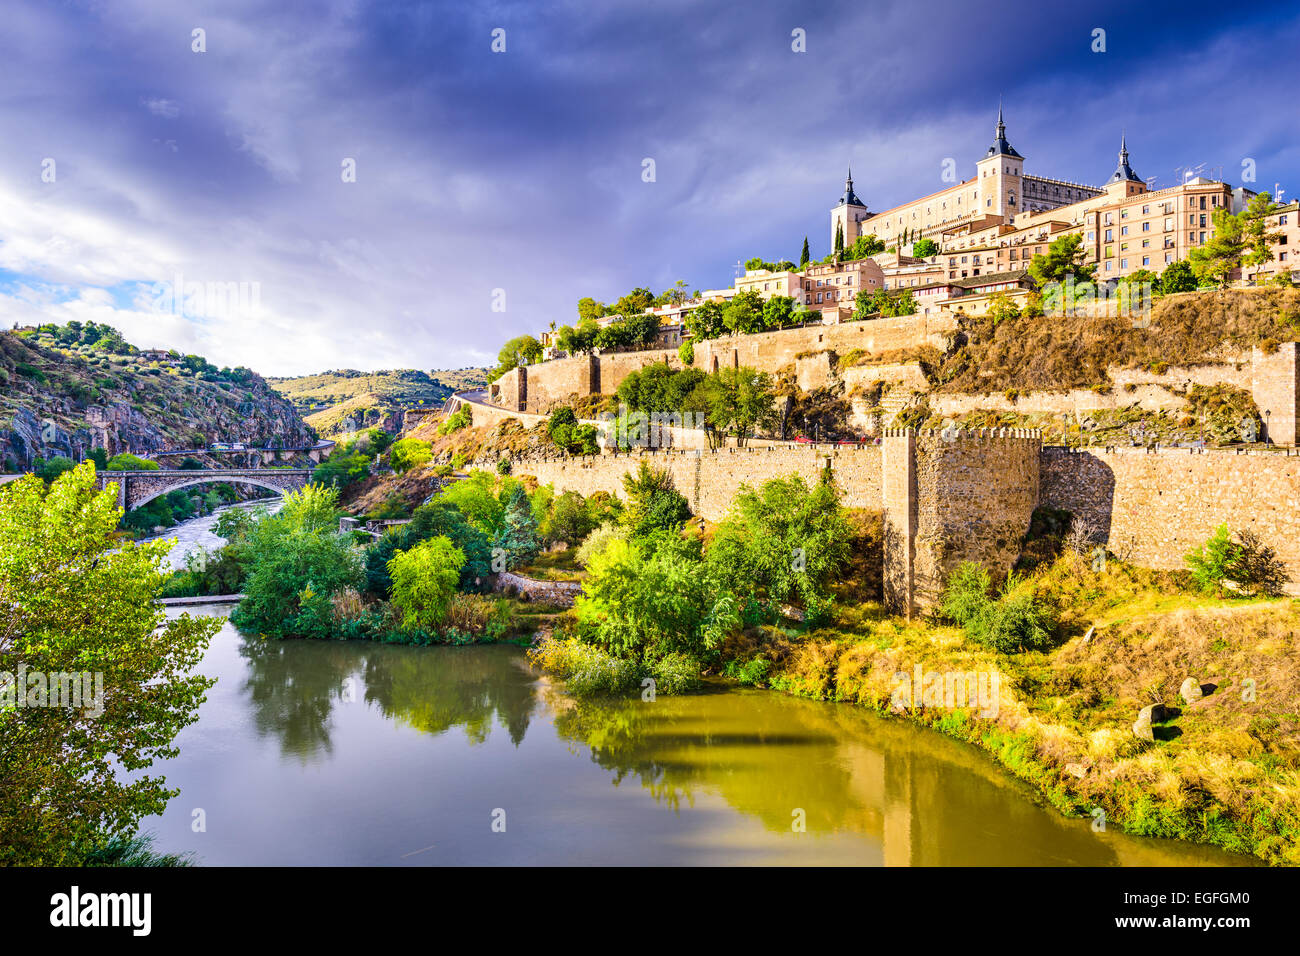 Toledo, Spain old town skyline. - Stock Image